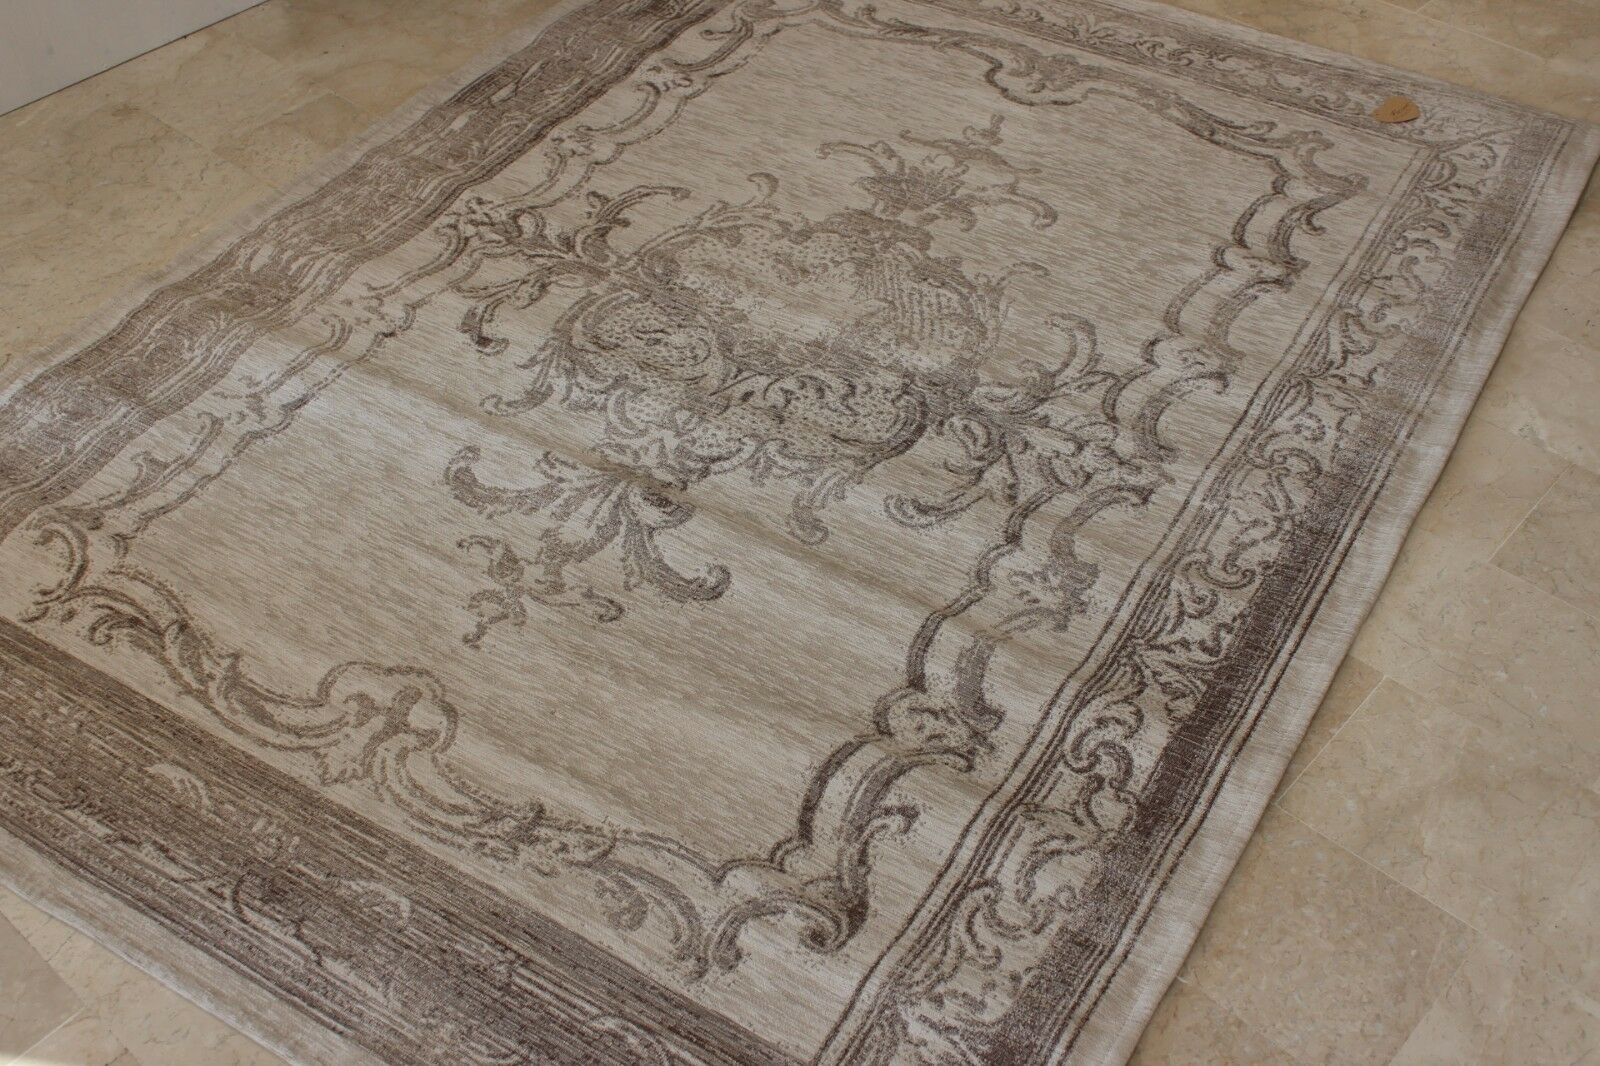 Blanc Mariclò Tappeto Shabby Chic Serie Naturale Teatro  Variante Naturale Serie 7d74cd